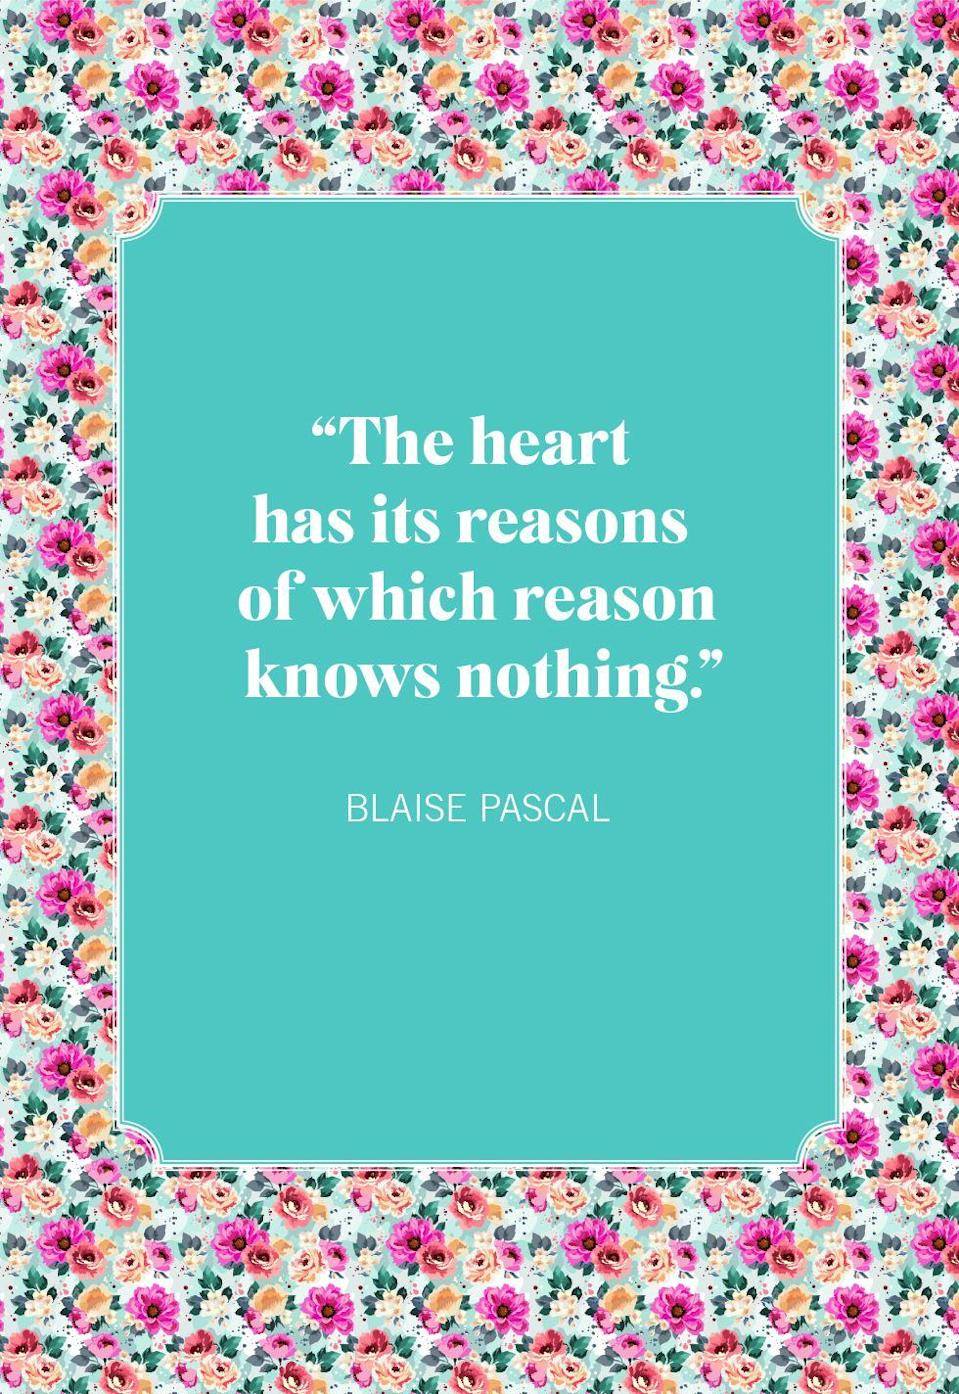 "<p>""The heart has its reasons of which reason knows nothing.""</p>"